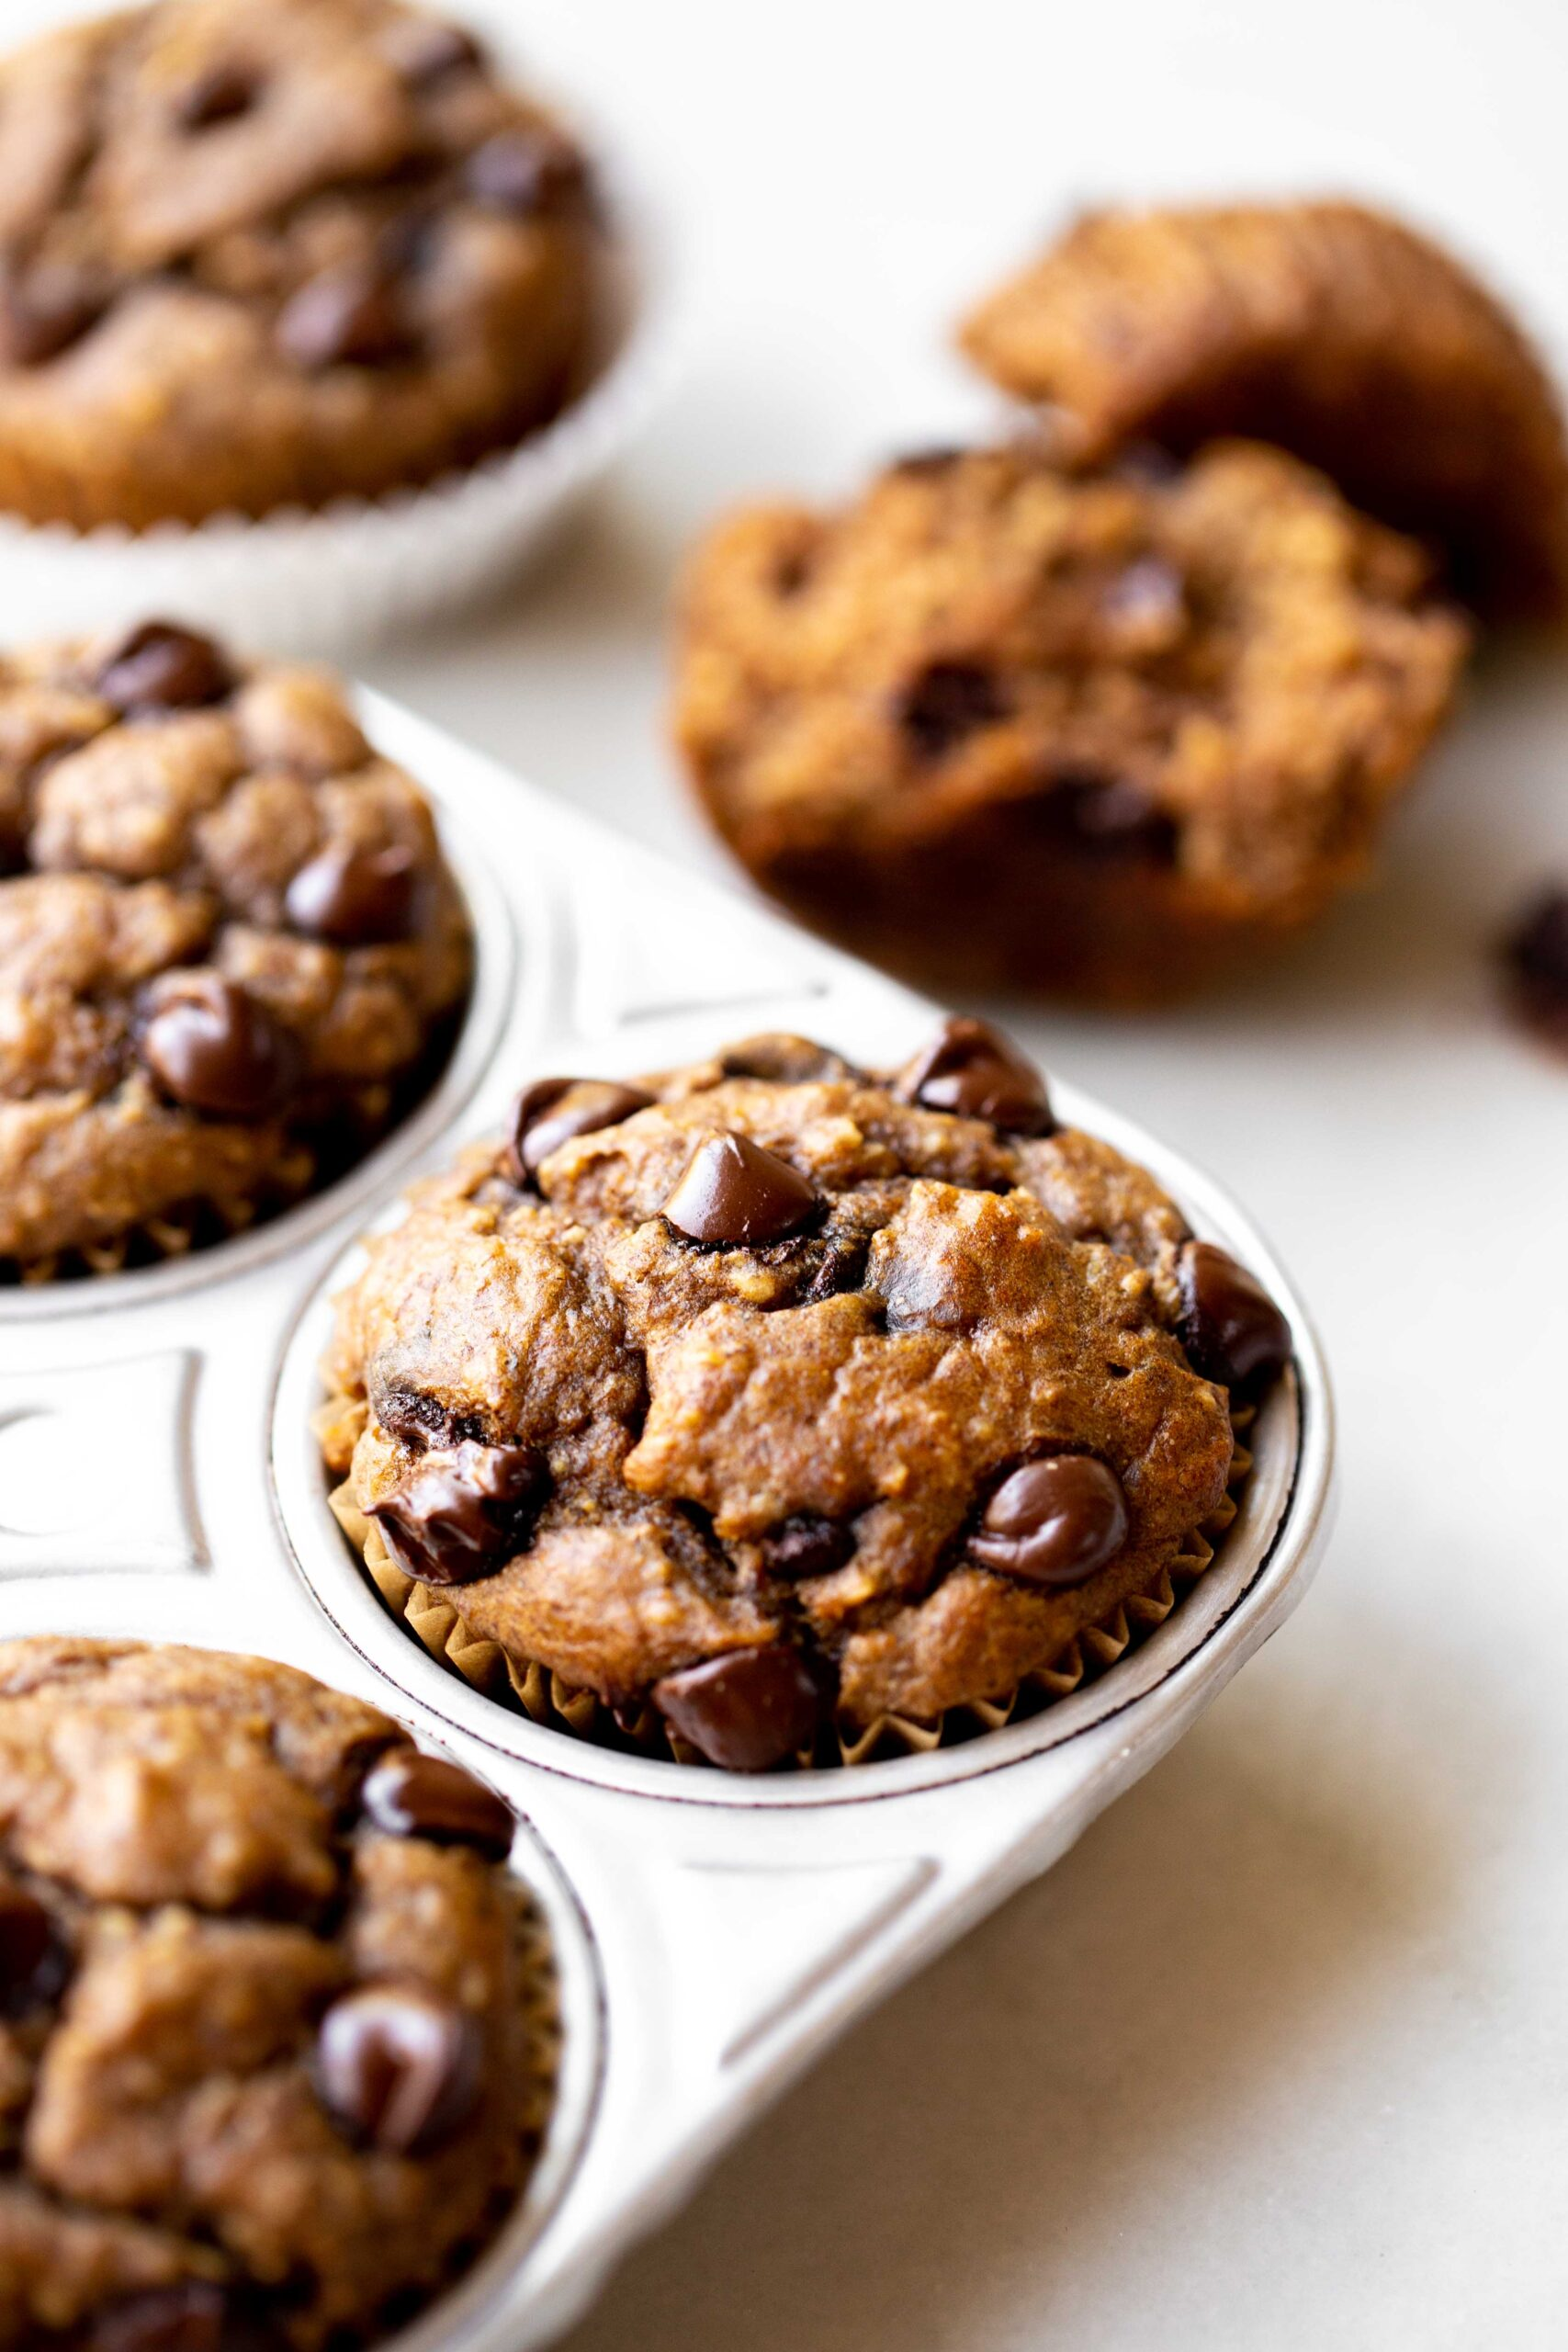 Healthy Chocolate Chip Banana Muffins Modern Minimalism